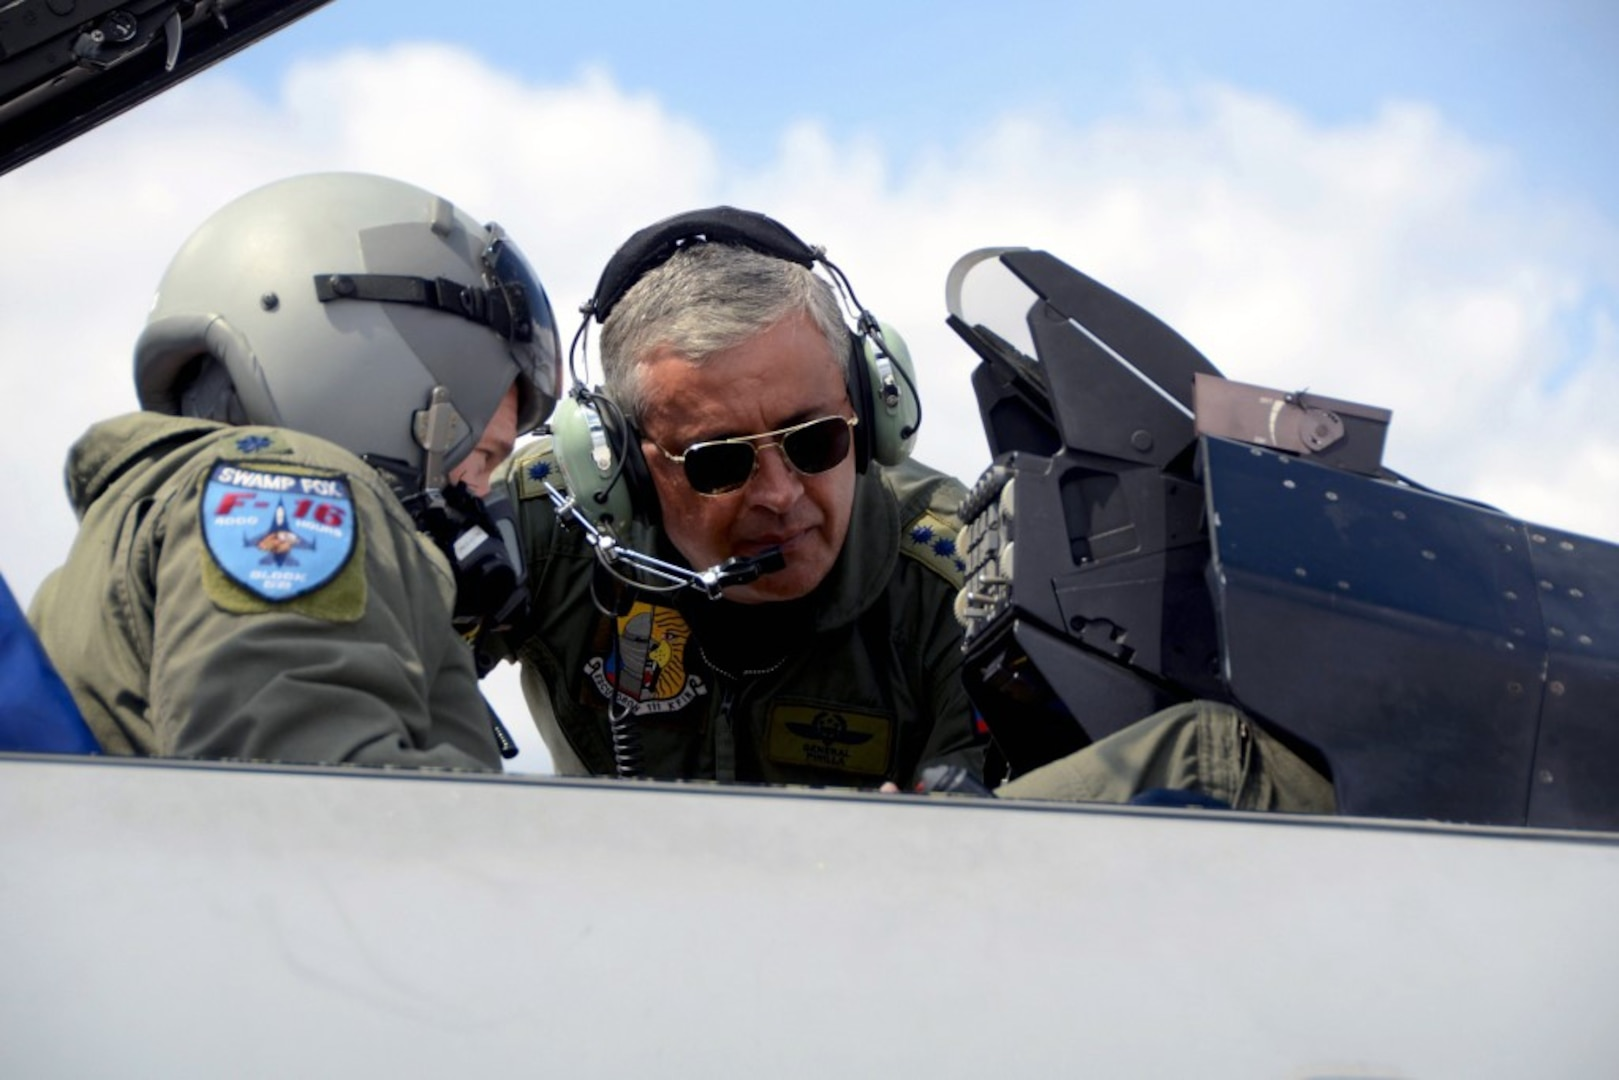 Gen. Tito Saul Pinilla Pinilla, commander of the Colombian Air Force, speaks with Lt. Col. Scott Bridgers, 169th Aircraft Maintenance Squadron commander and F-16 fighter pilot, during his tour of McEntire Joint National Guard Base, S.C., April 8, 2013.